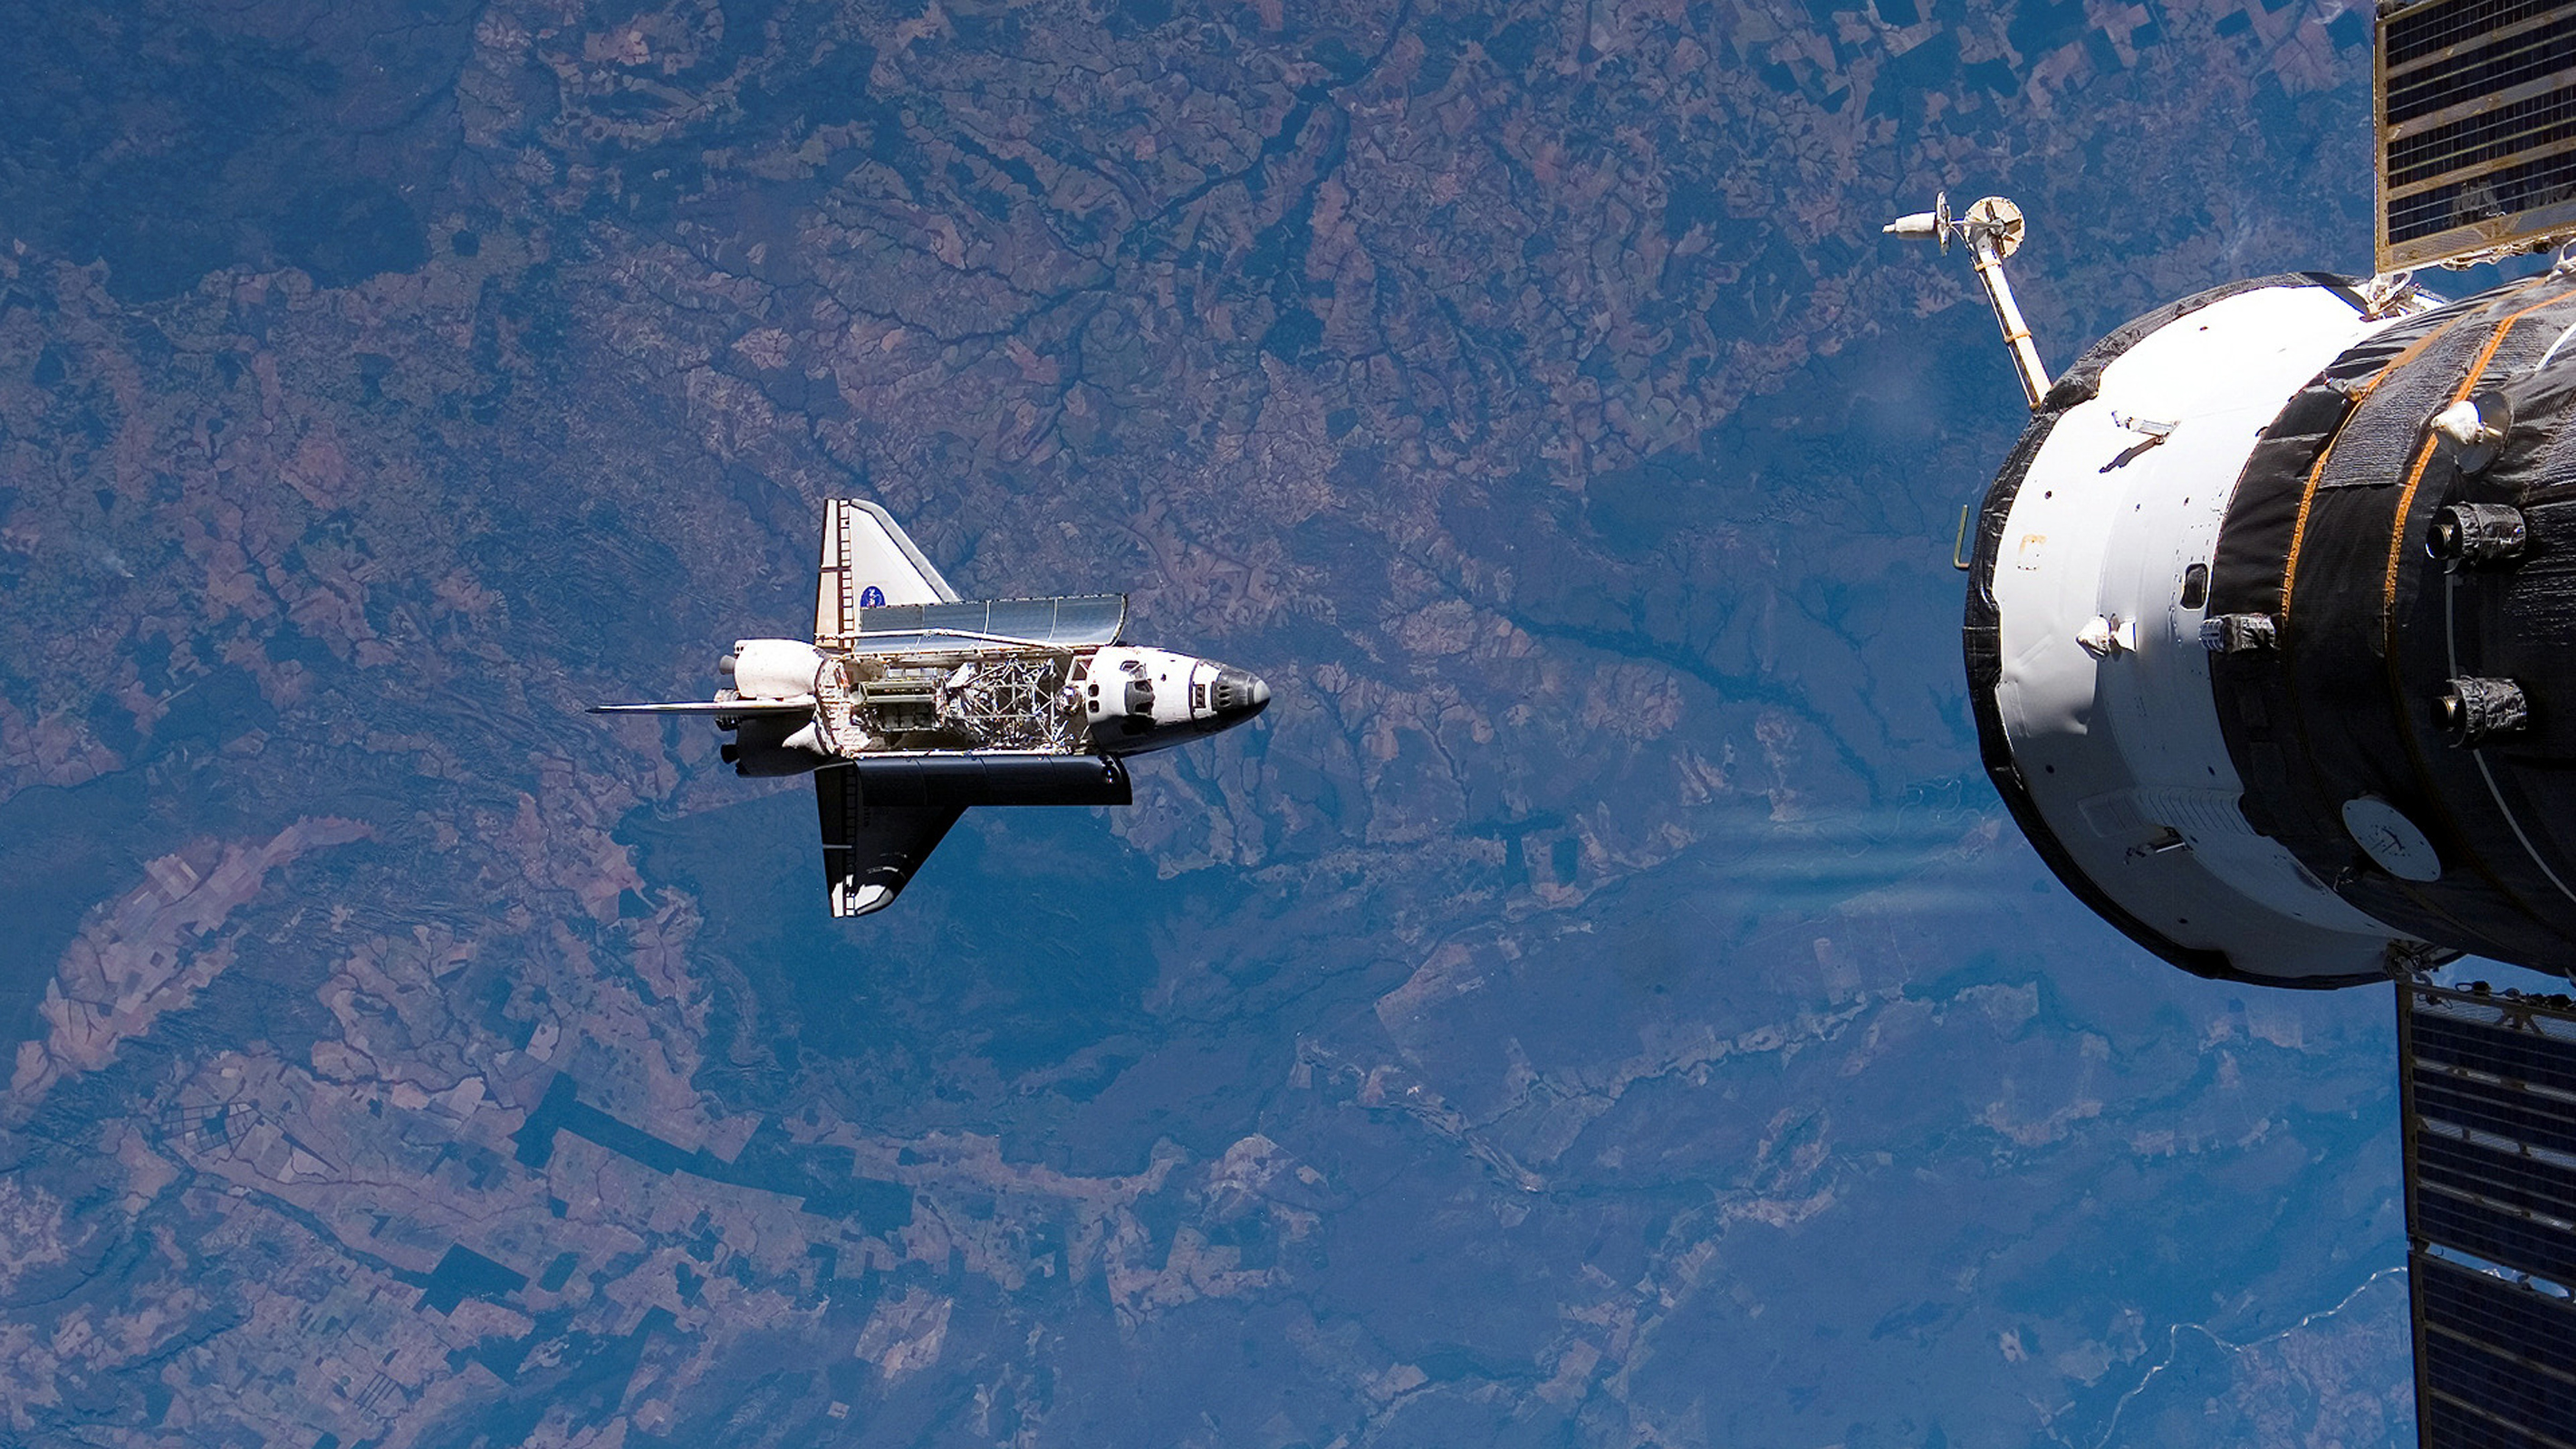 Download Original Resolution - Hd Wallpapers Of Space Shuttle , HD Wallpaper & Backgrounds